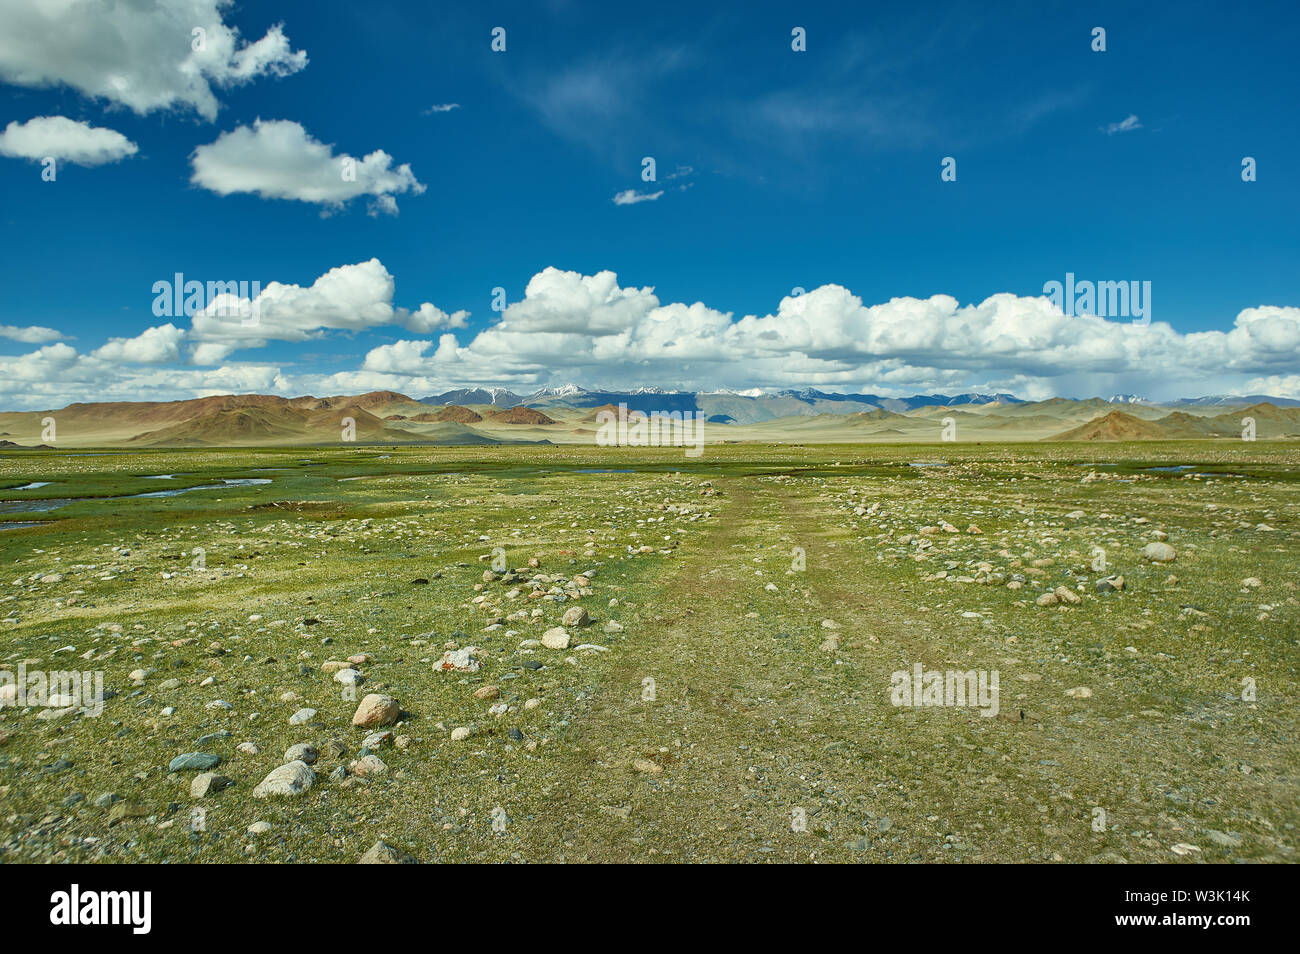 Mongolian Altai.  Scenic valley on the background of the snowcapped mountains. - Stock Image